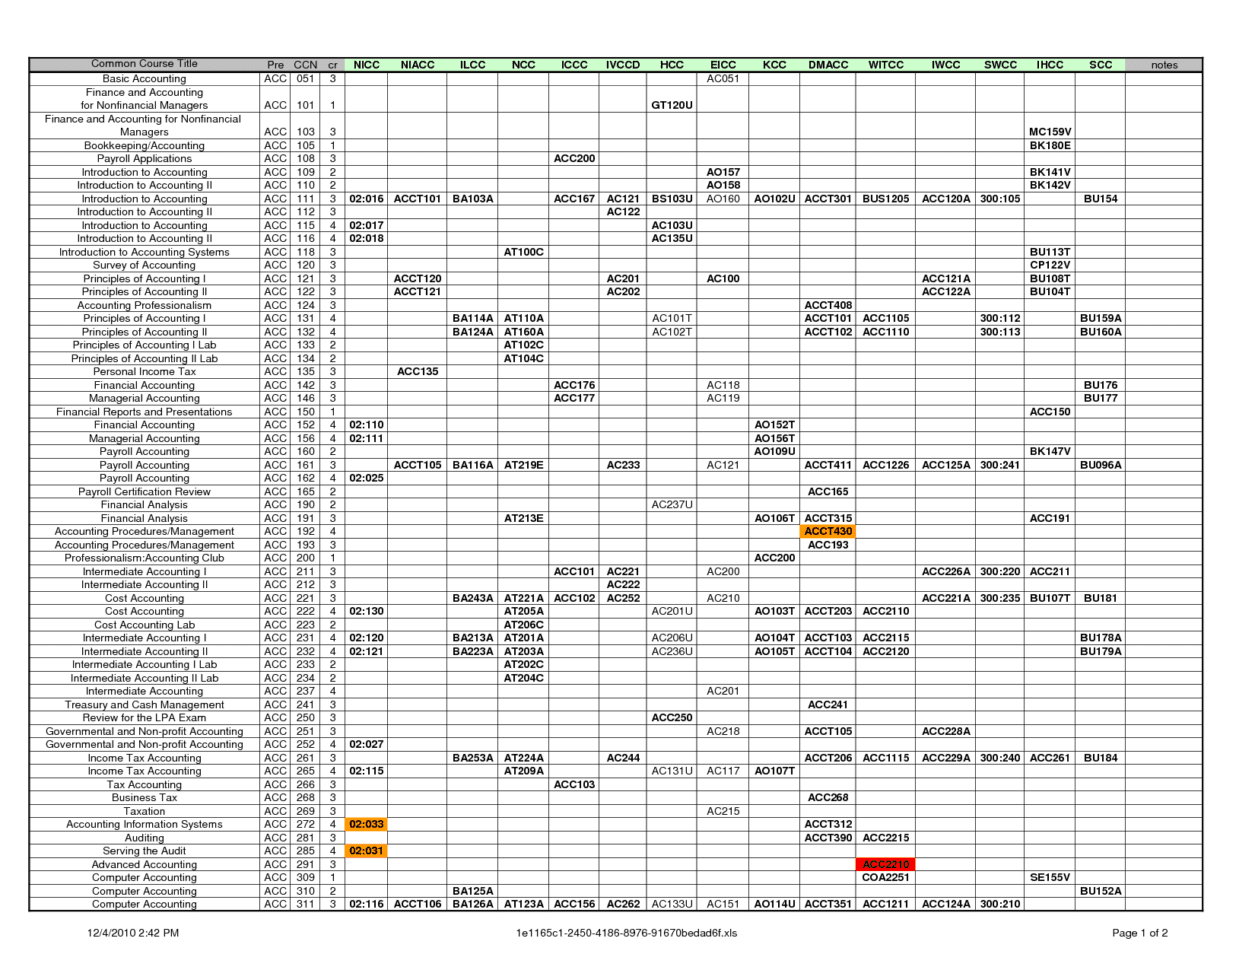 Spreadsheets For Small Business Bookkeeping Bookkeeping Spreadsheet Template Simple Accounting Spreadsheet Simple Accounting Spreadsheet For Small Business Monthly Bookkeeping Spreadsheet Simple Accounting Software Free Accounting Spreadsheet  Simple Accounting Spreadsheet Business Accounting Spreadsheet Template Spreadsheet Templates for Busines